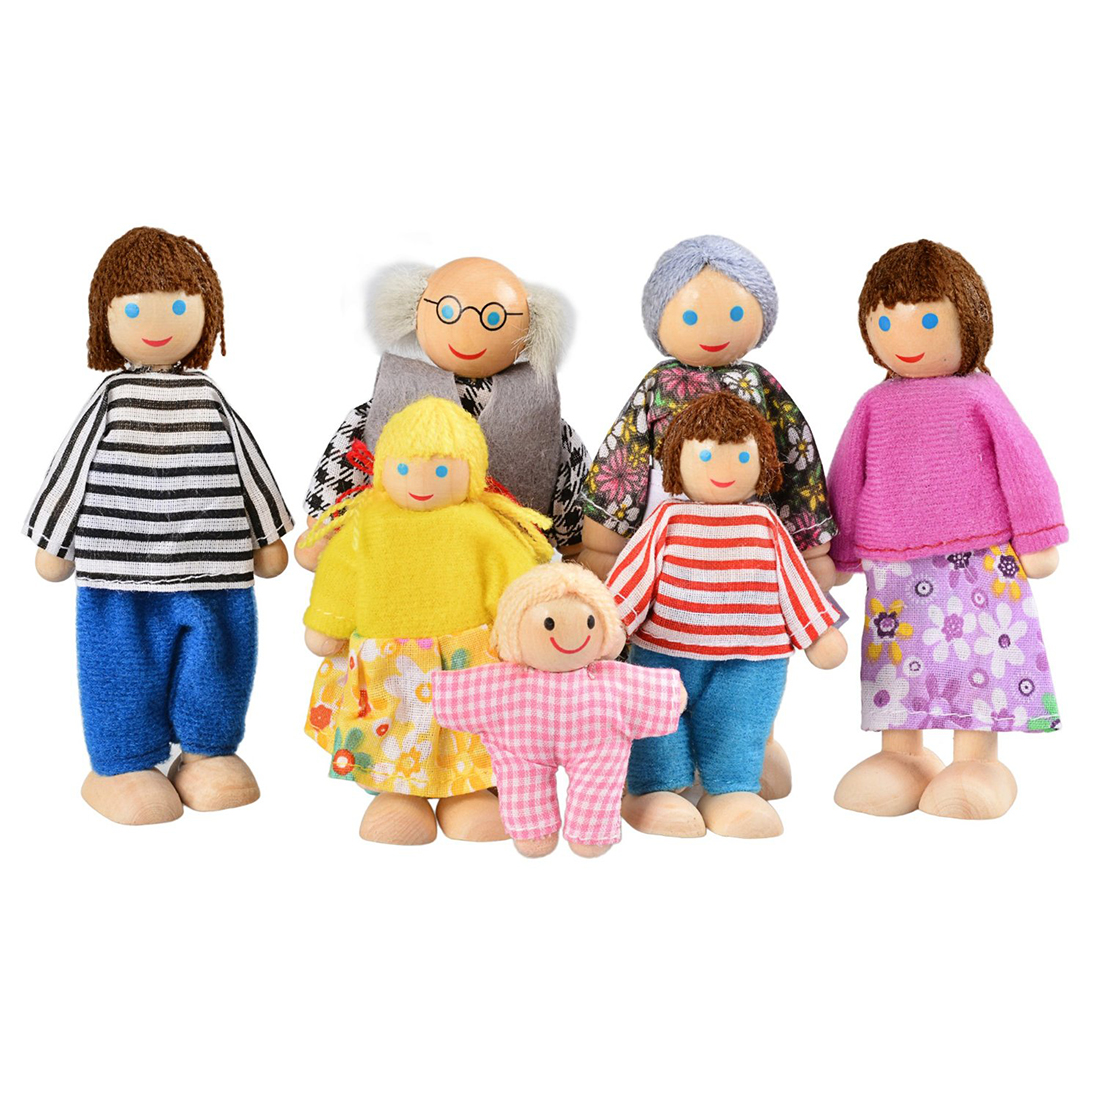 Happy Doll Family of 7 6 5 4 People Wooden Toy Set Kids Playing Doll Gift Kids Pretend Toys Happy Dollhouse Family